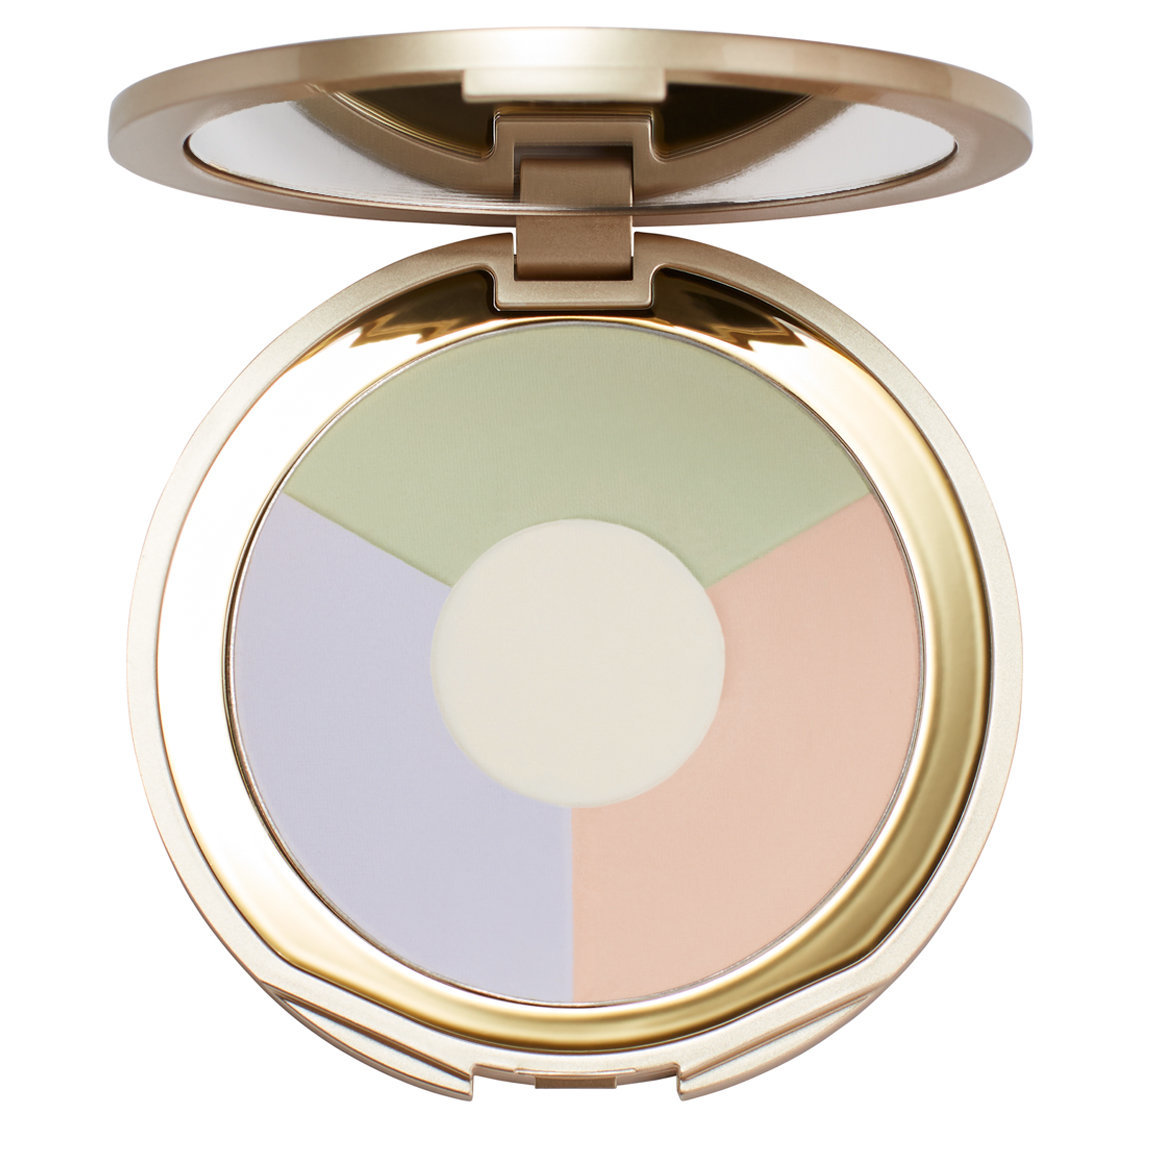 Stila One Step Correct Brightening Finishing Powder alternative view 1 - product swatch.